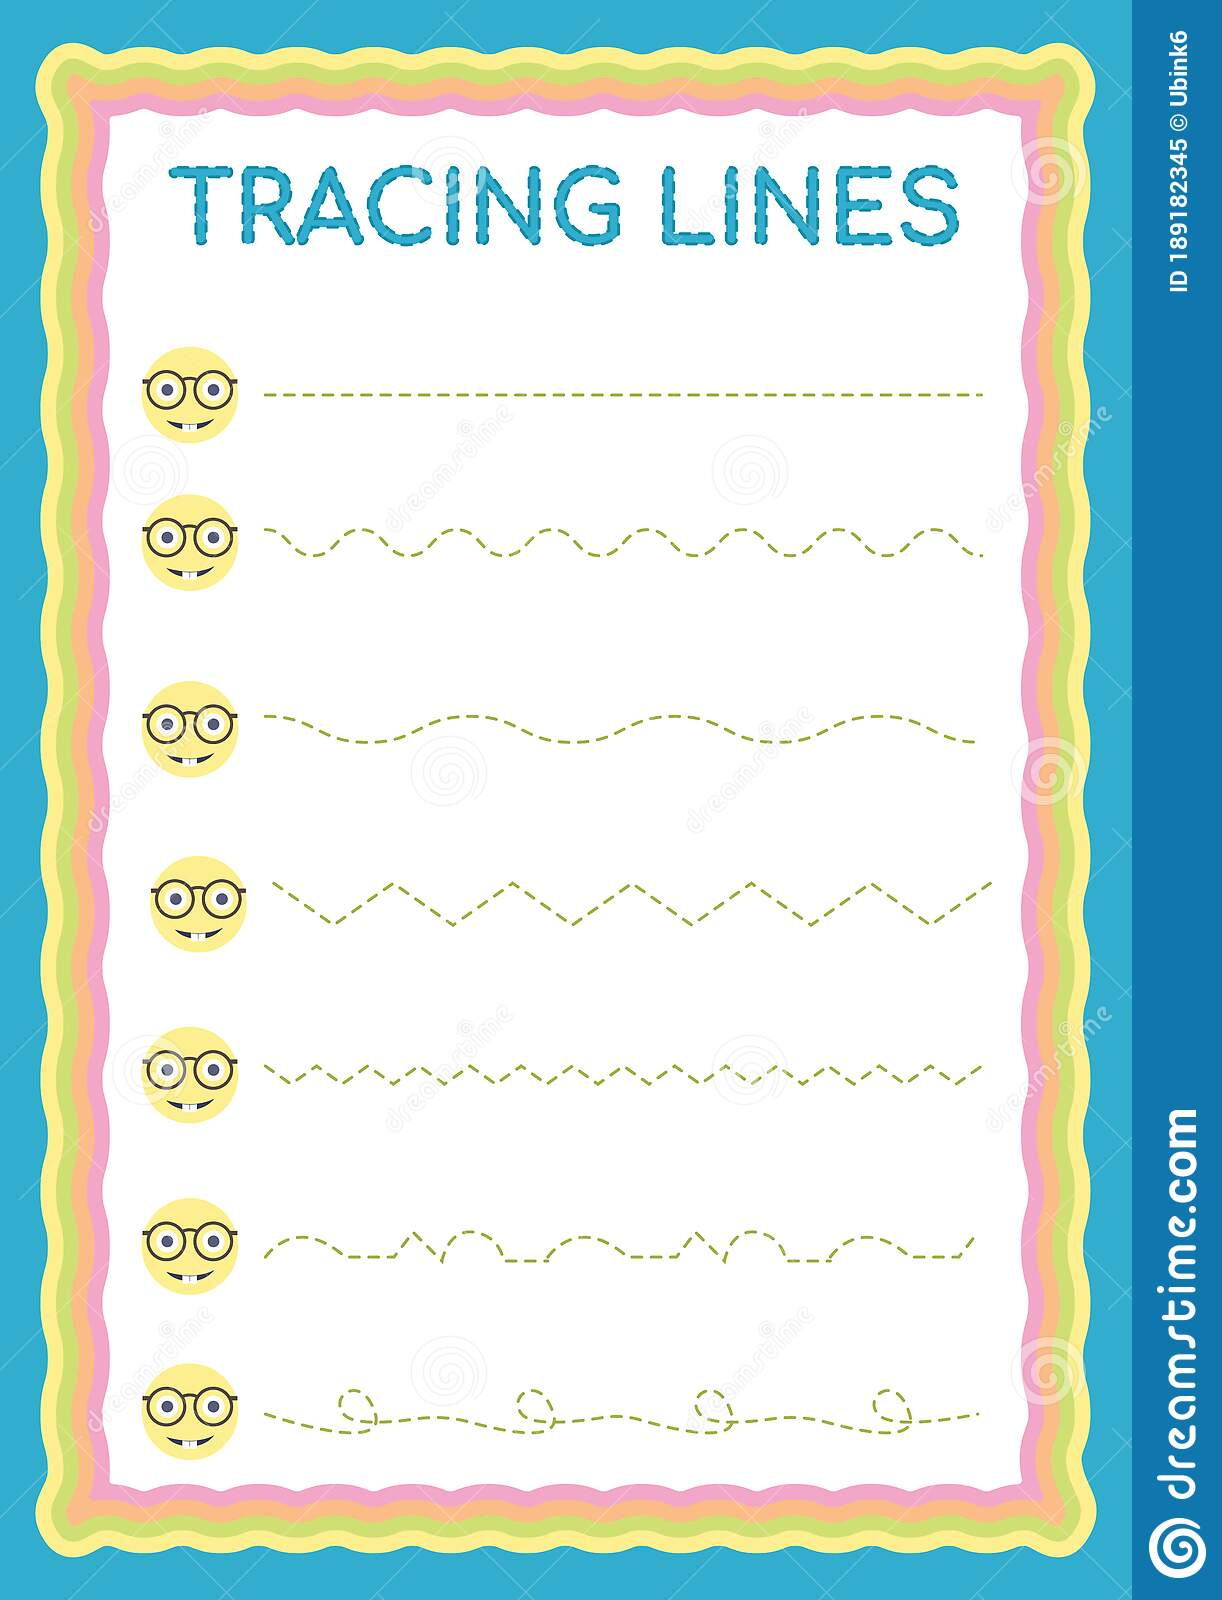 Preschool Colorful Tracing Lines Daily Printable A4